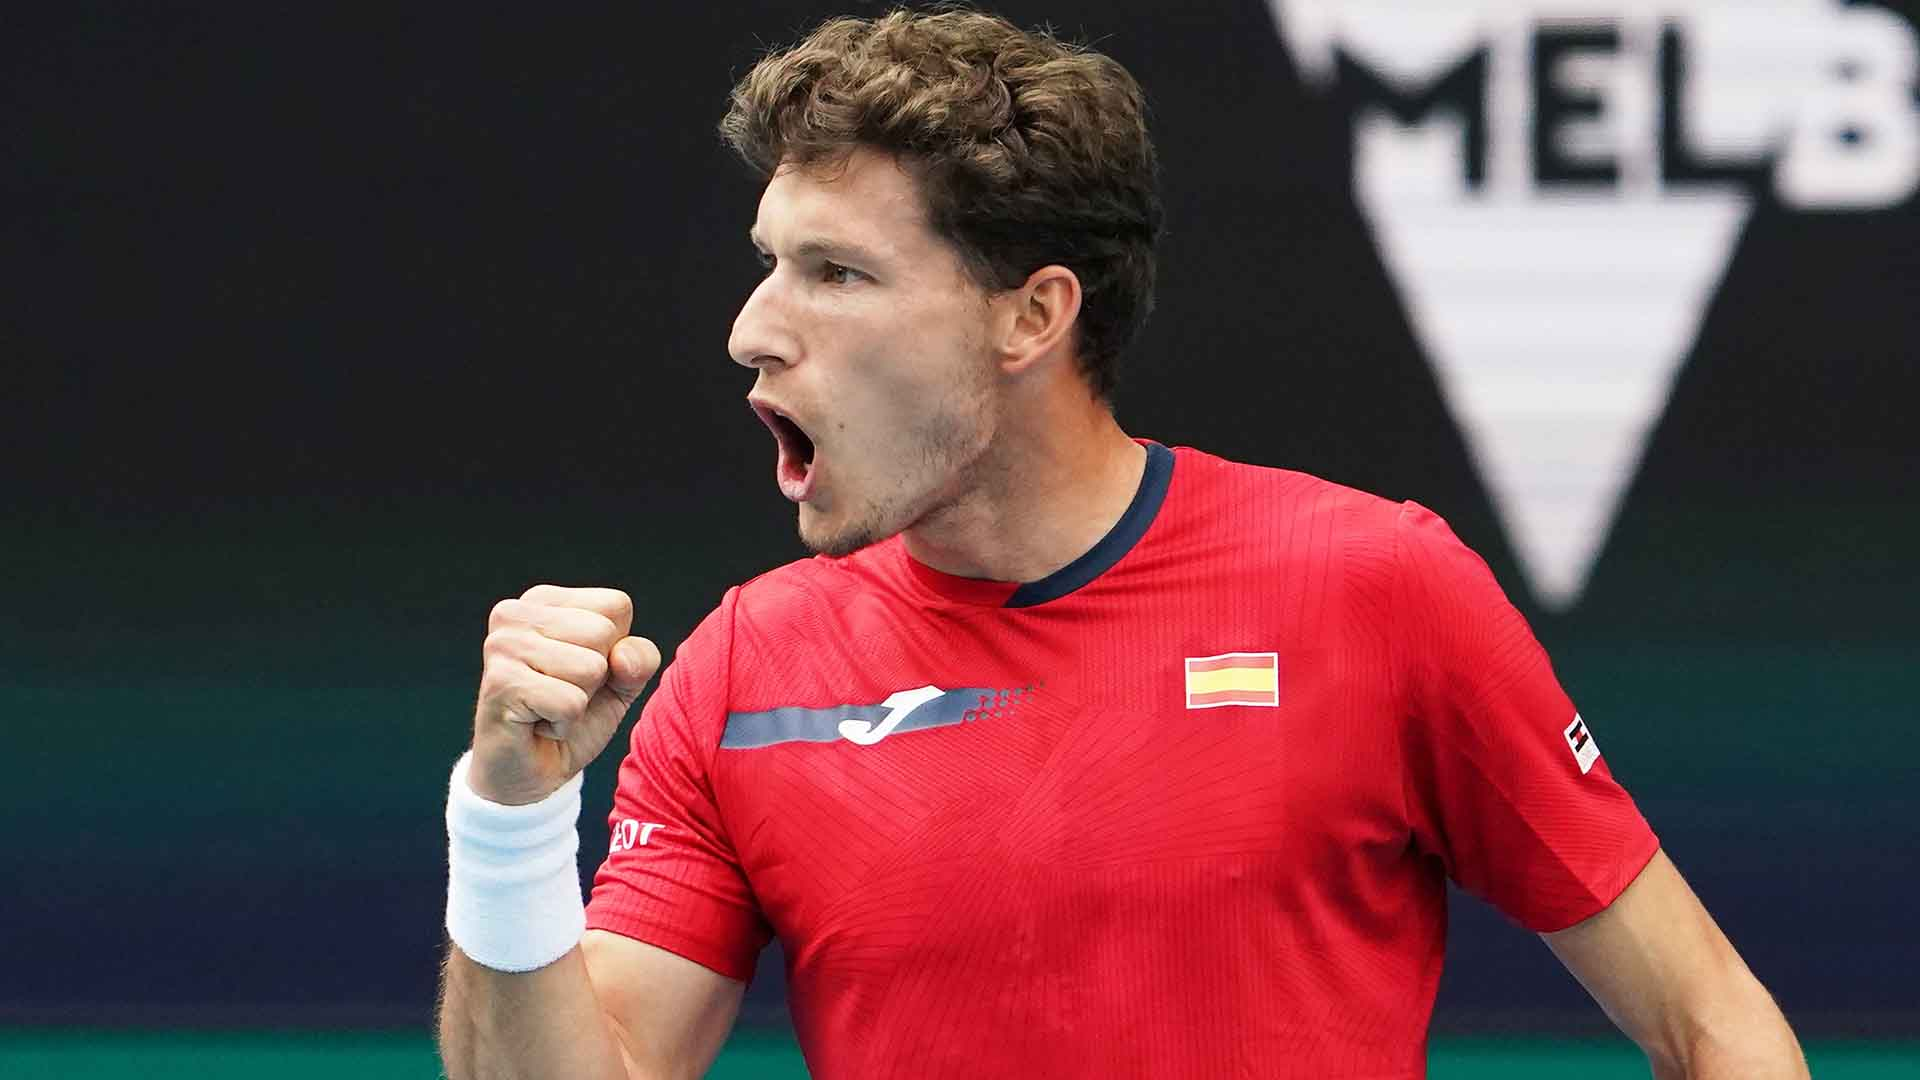 Pablo Carreno Busta converts four of seven break points to defeat John Millman in straights sets at the ATP Cup on Tuesday.